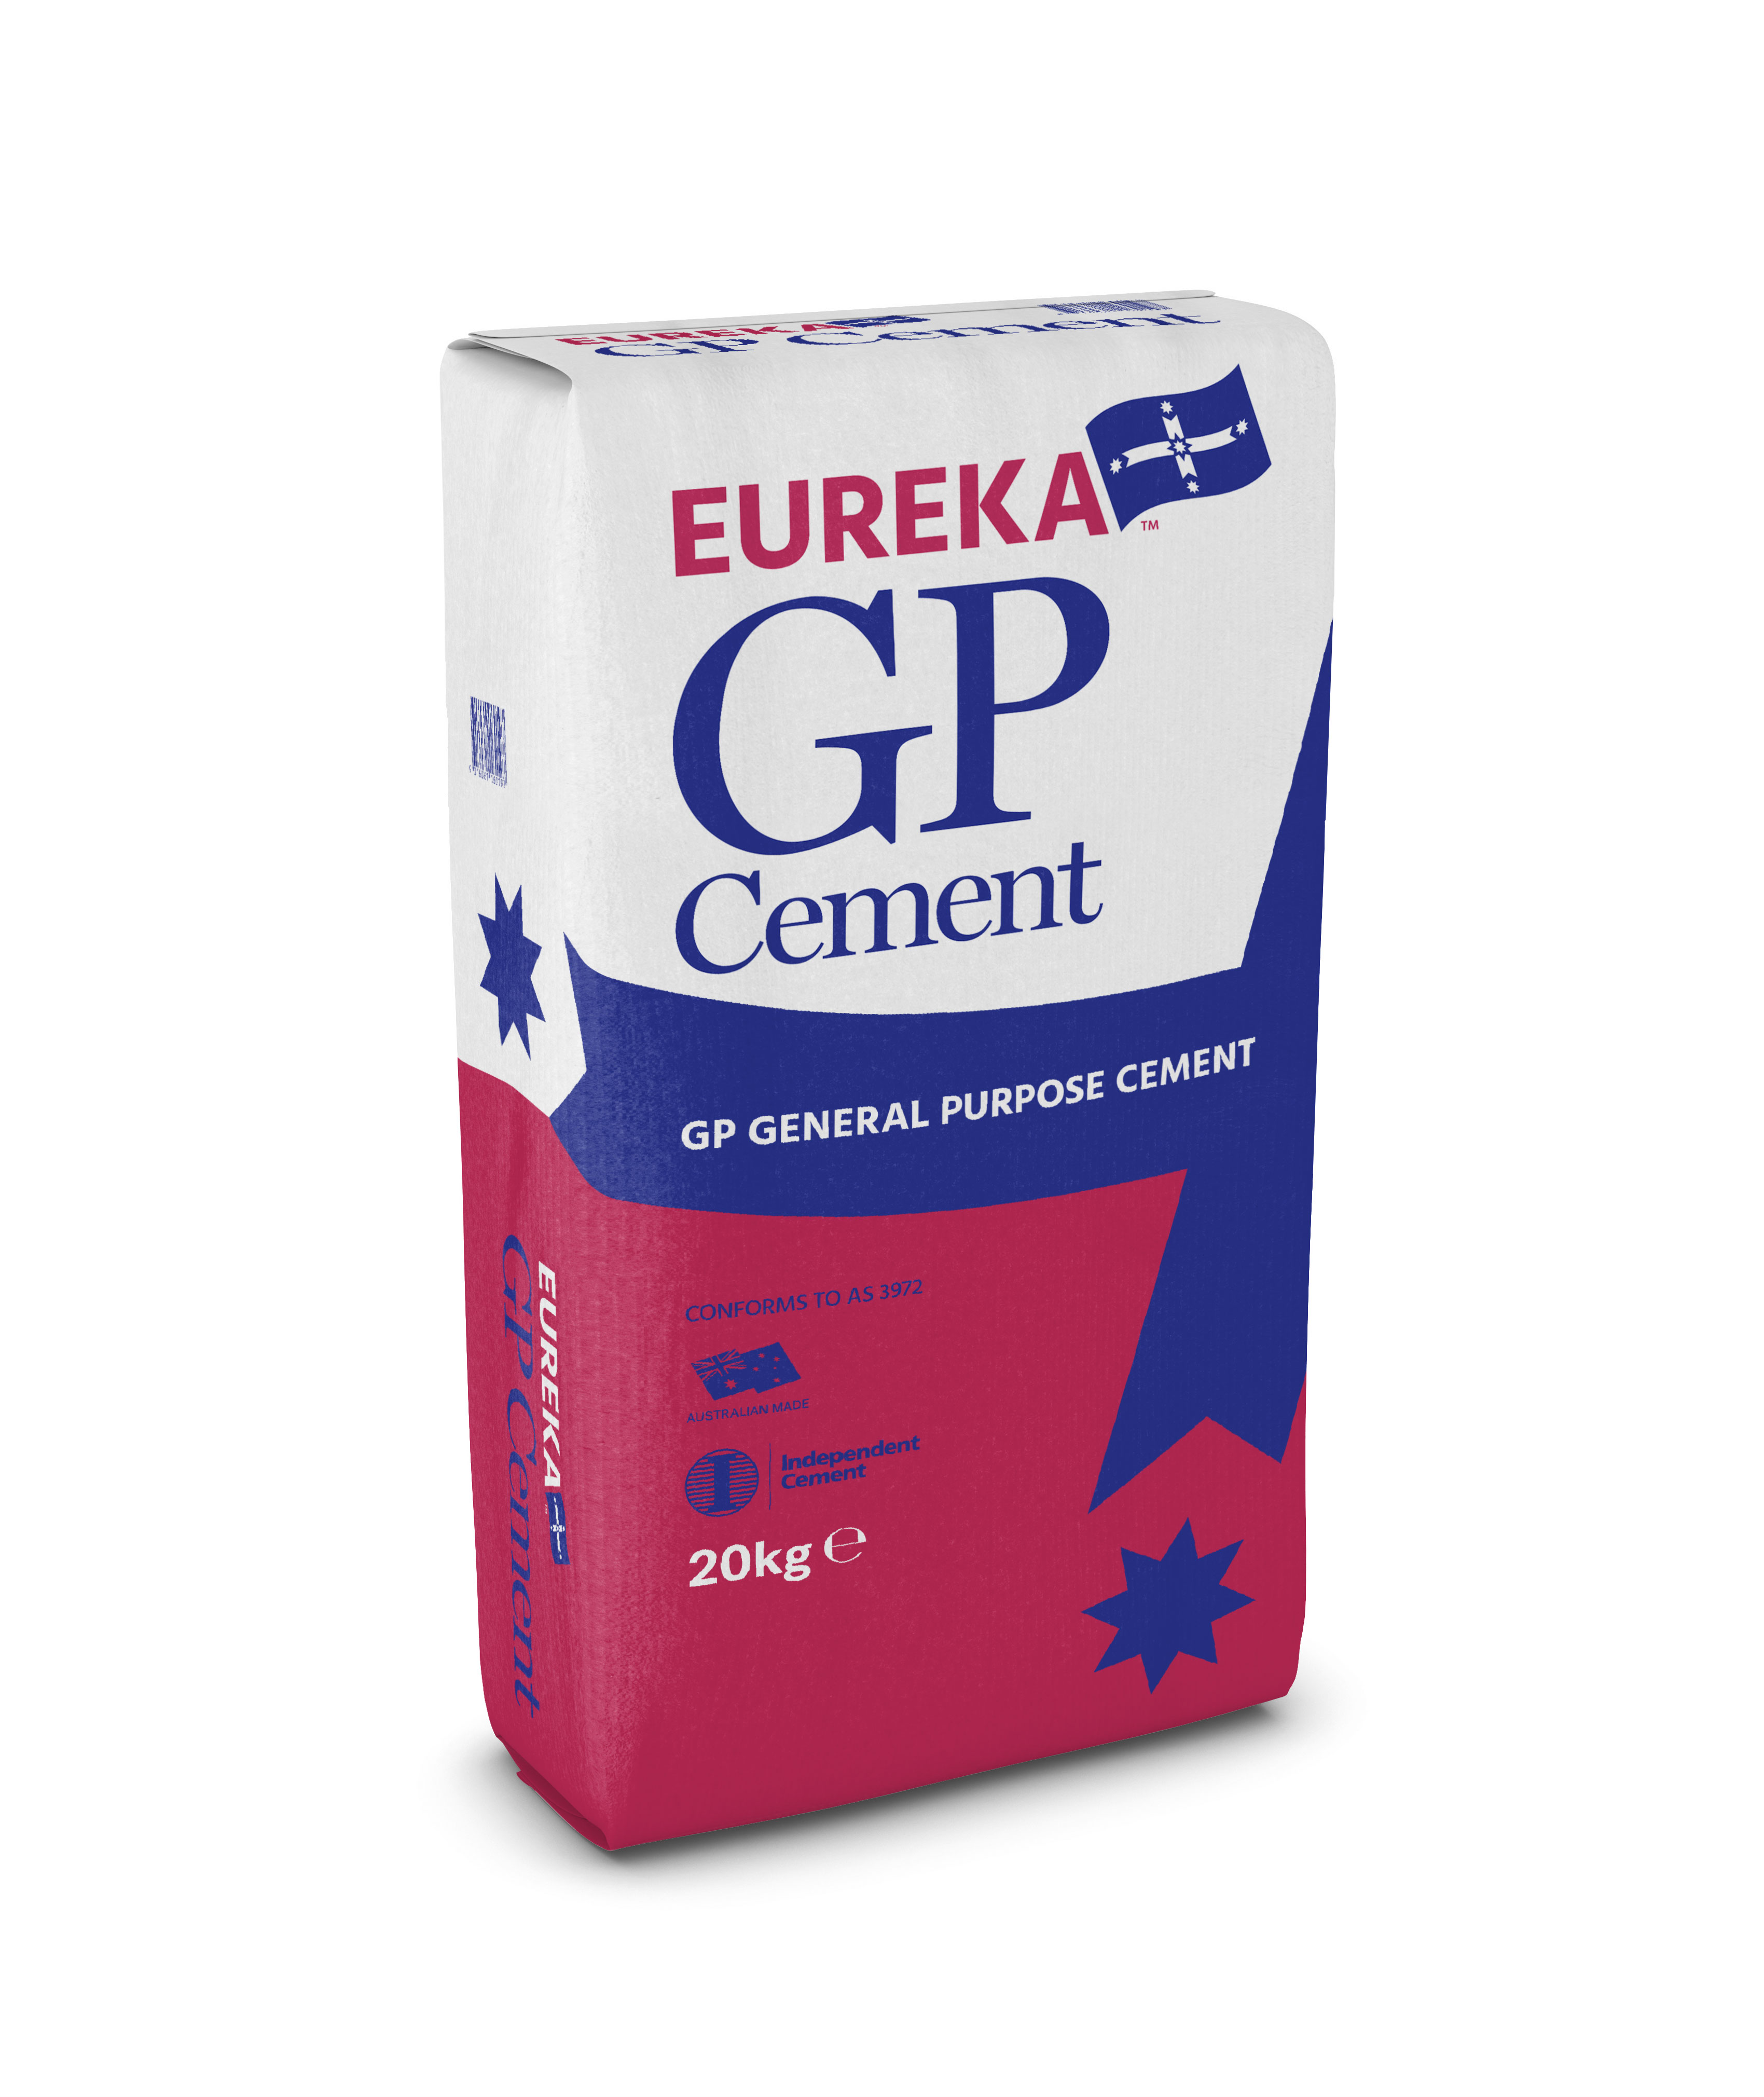 Eureka Type GP Cement